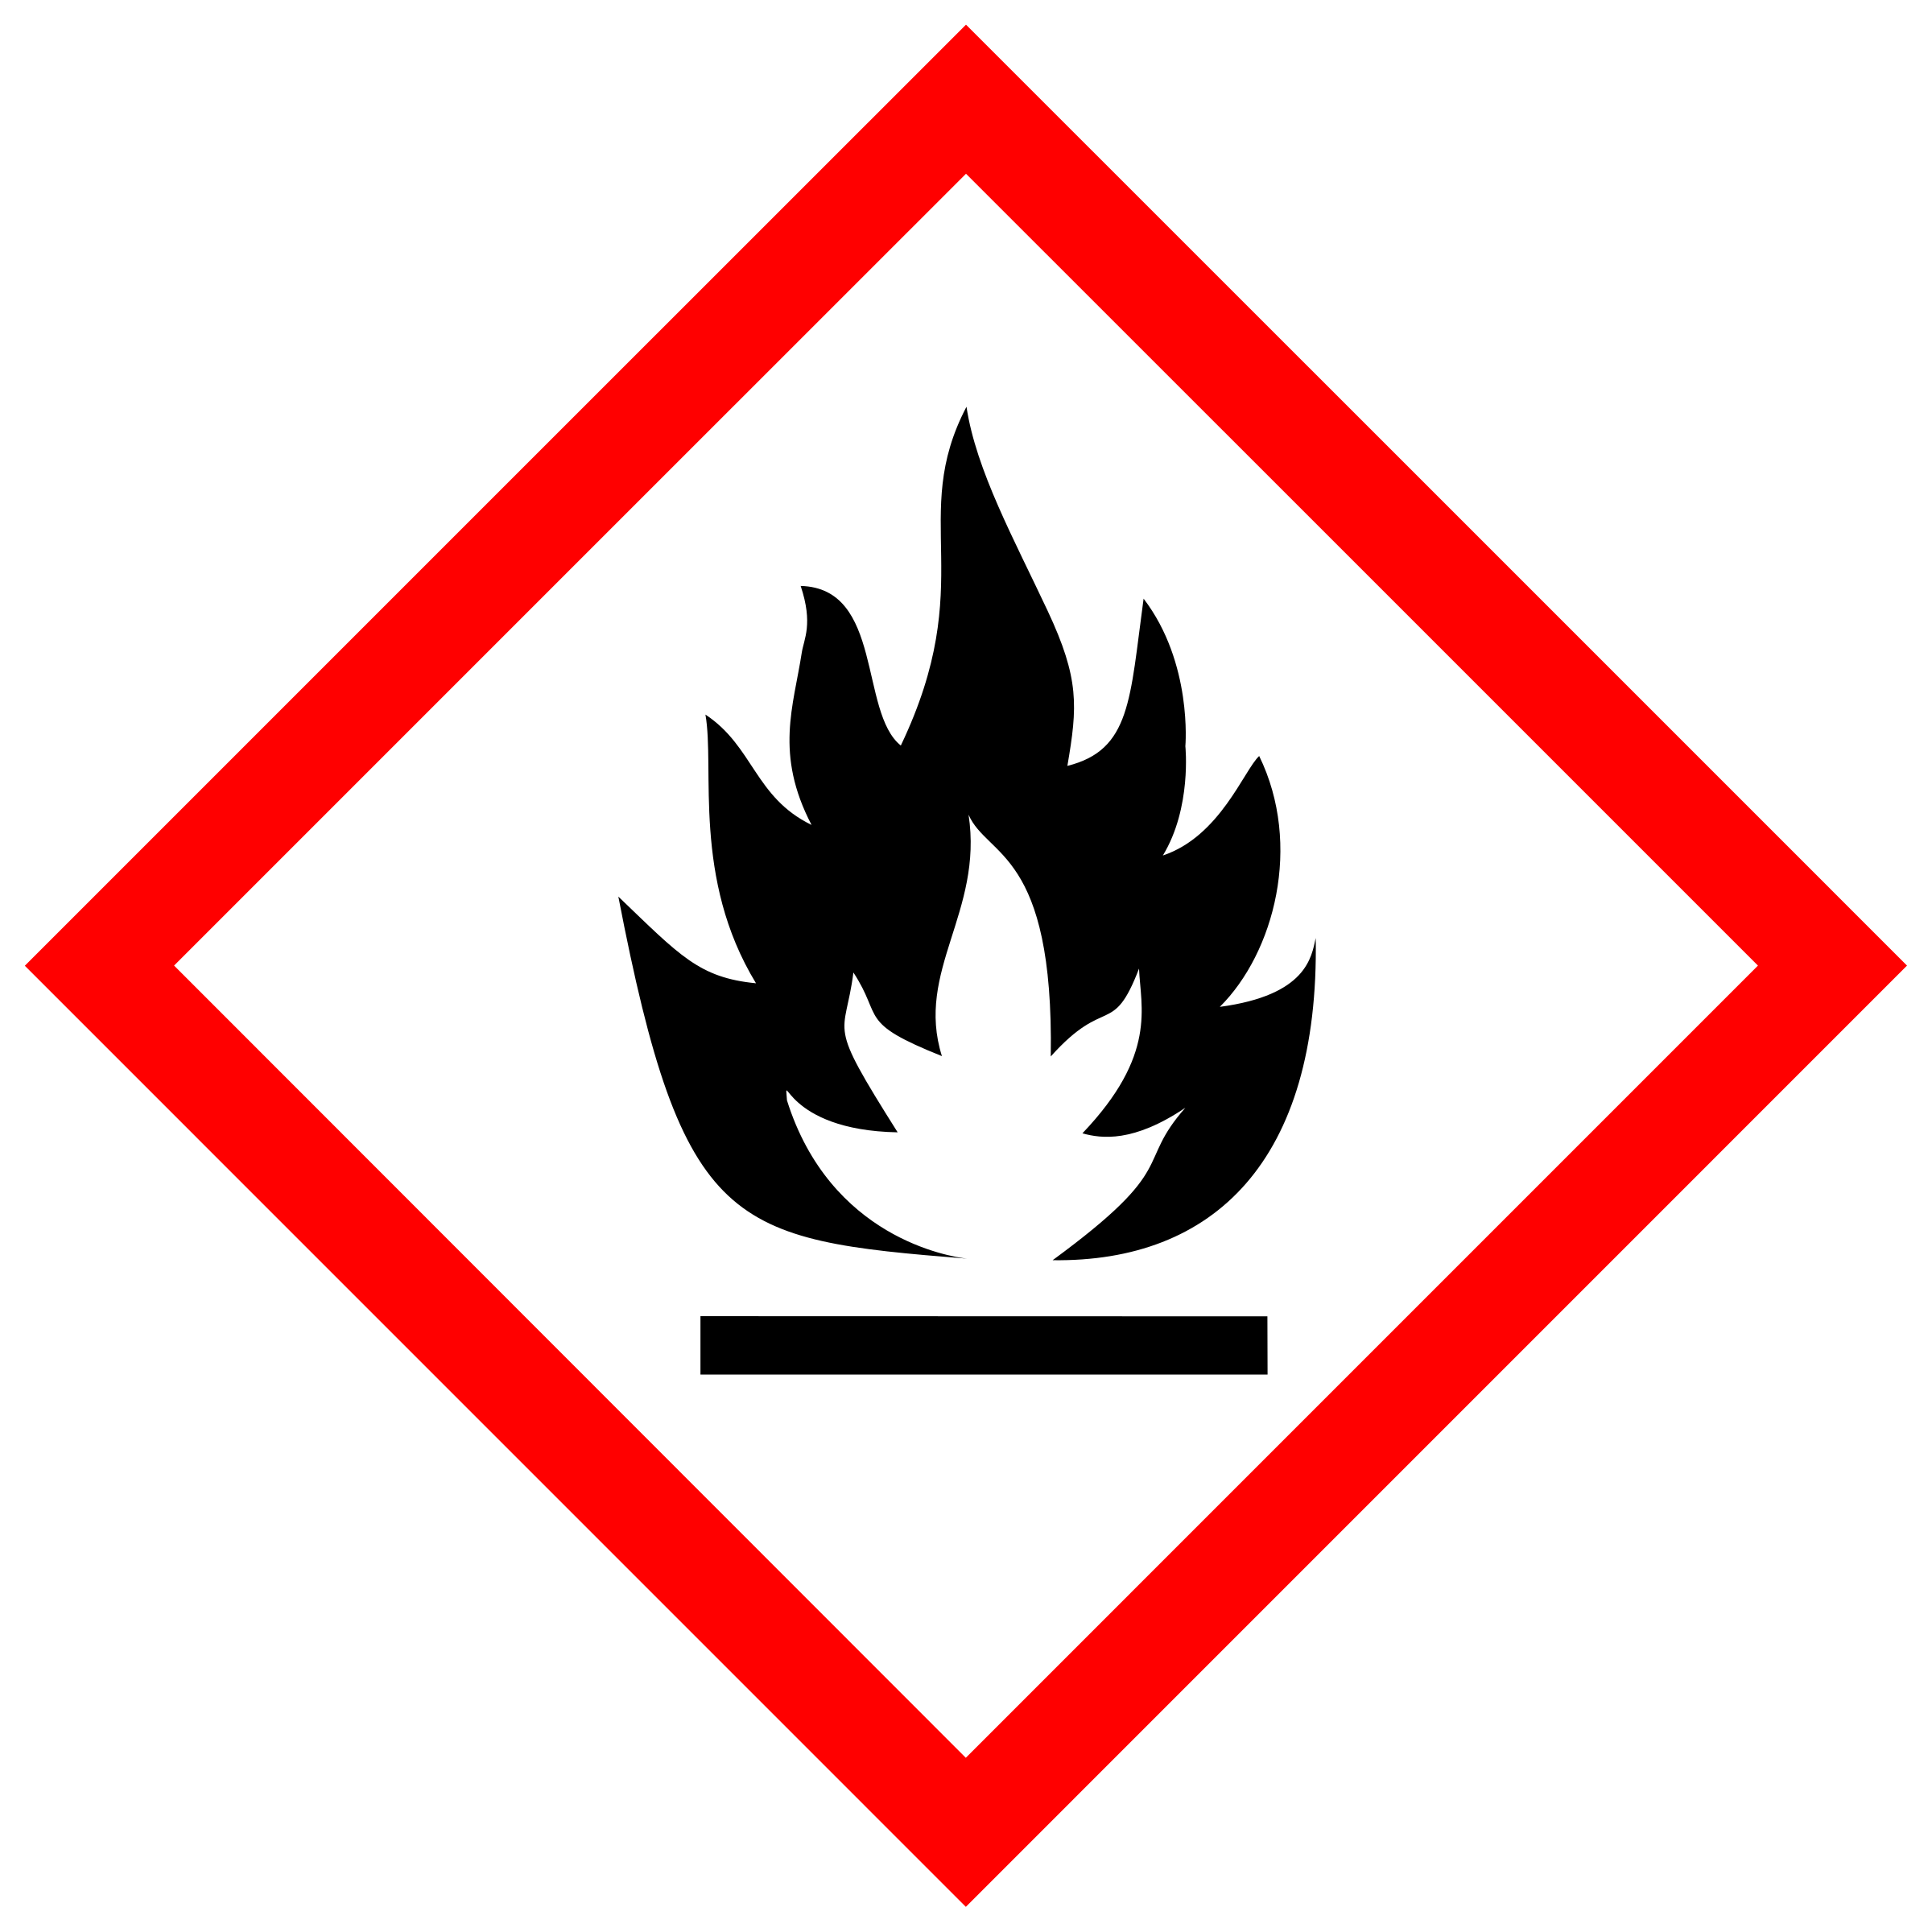 GHS pictogram for flammable substances by Juhele